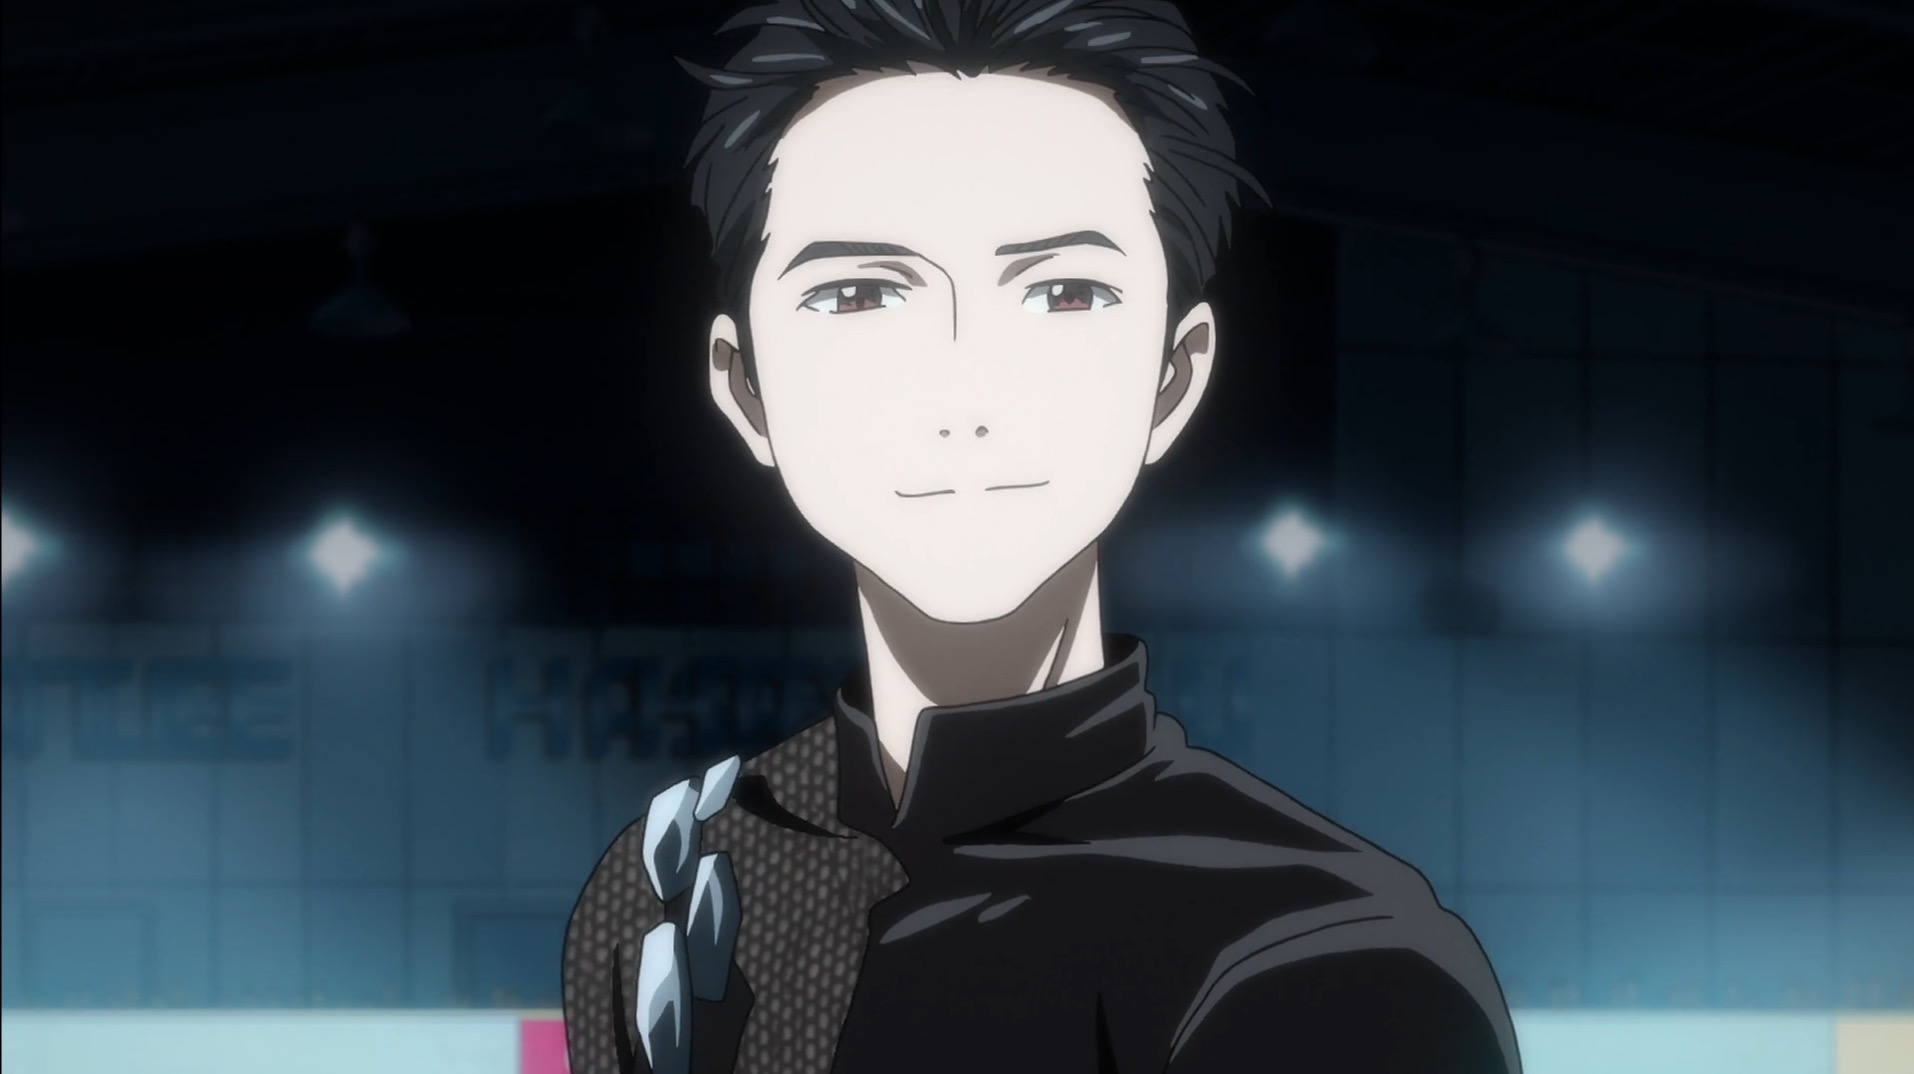 Yuri!!! On Ice Backgrounds, Compatible - PC, Mobile, Gadgets| 1914x1074 px